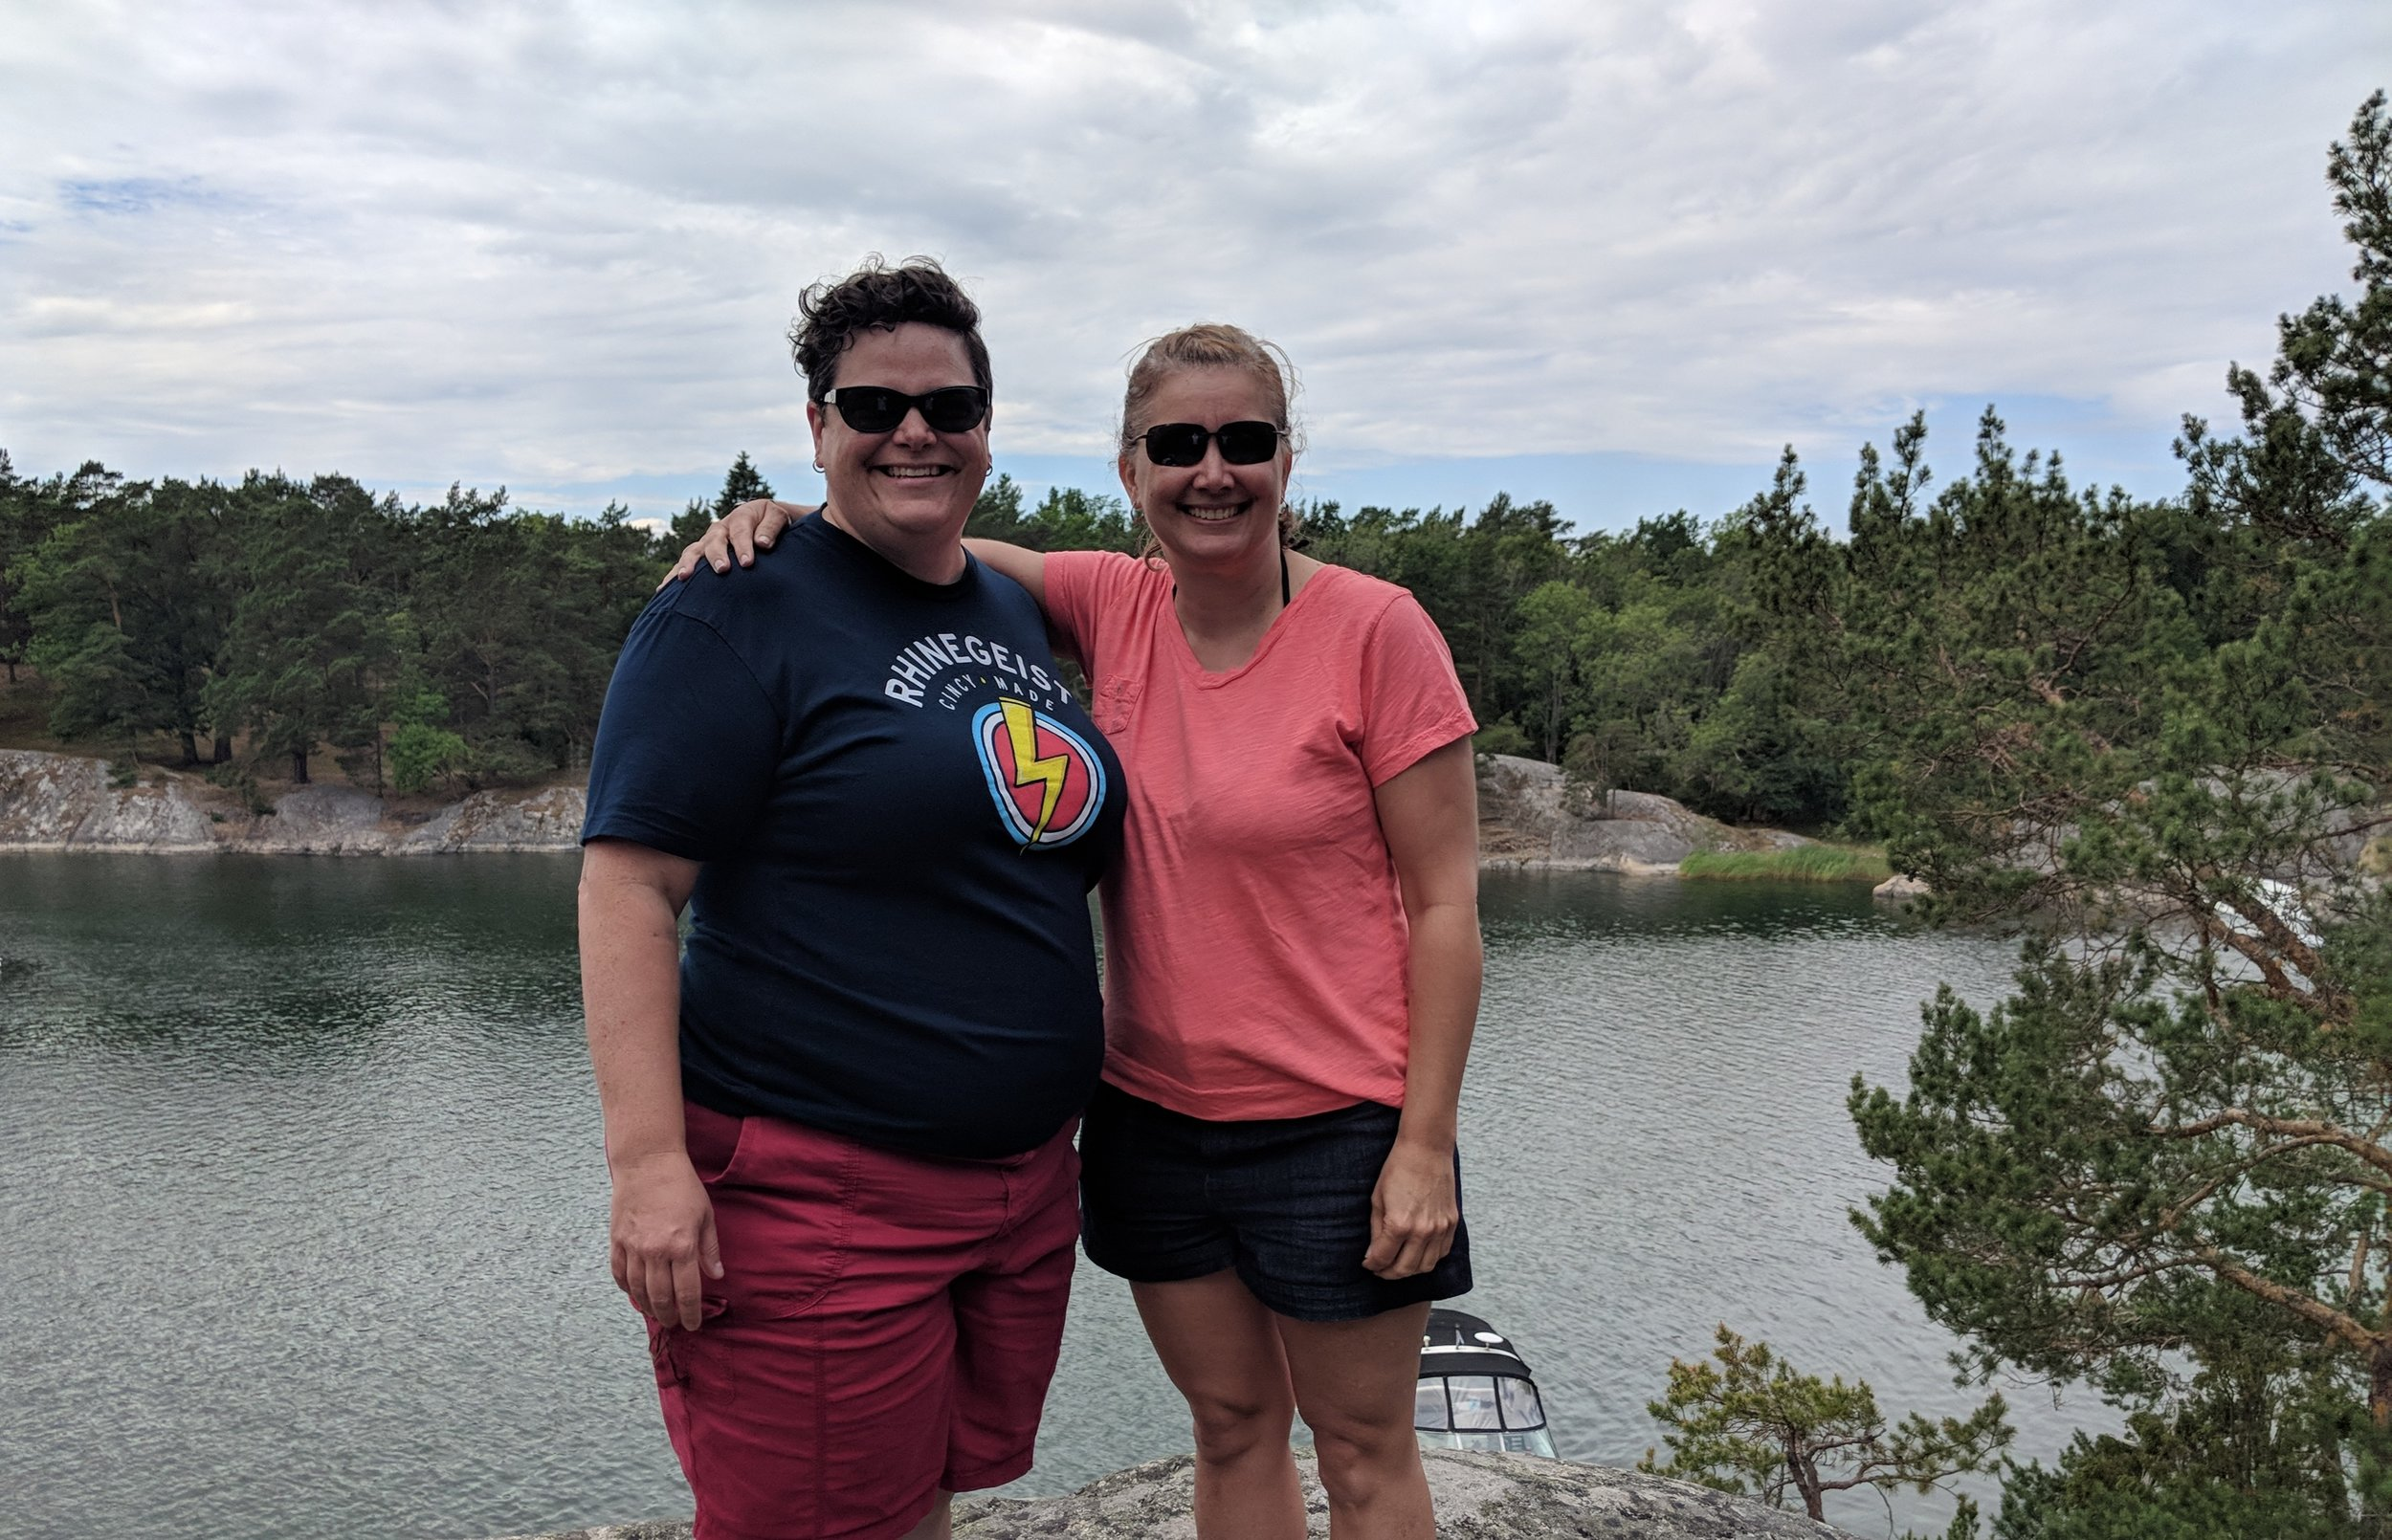 Debbie and I went on a boat tour of the archipelago in Sweden.